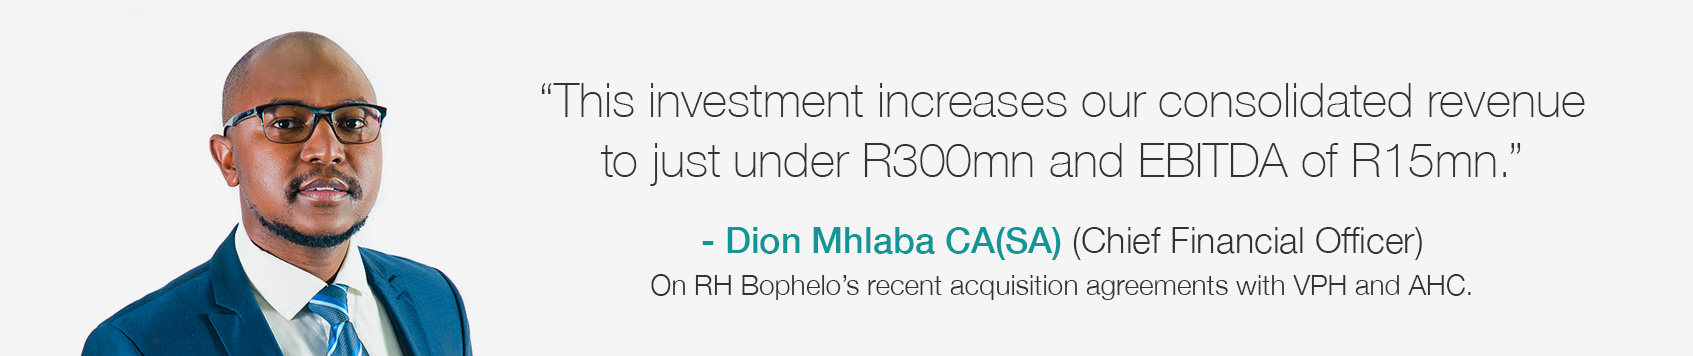 Dion Mhlaba on RH Bophelo's recent acquisition agreements with VPH and AHC